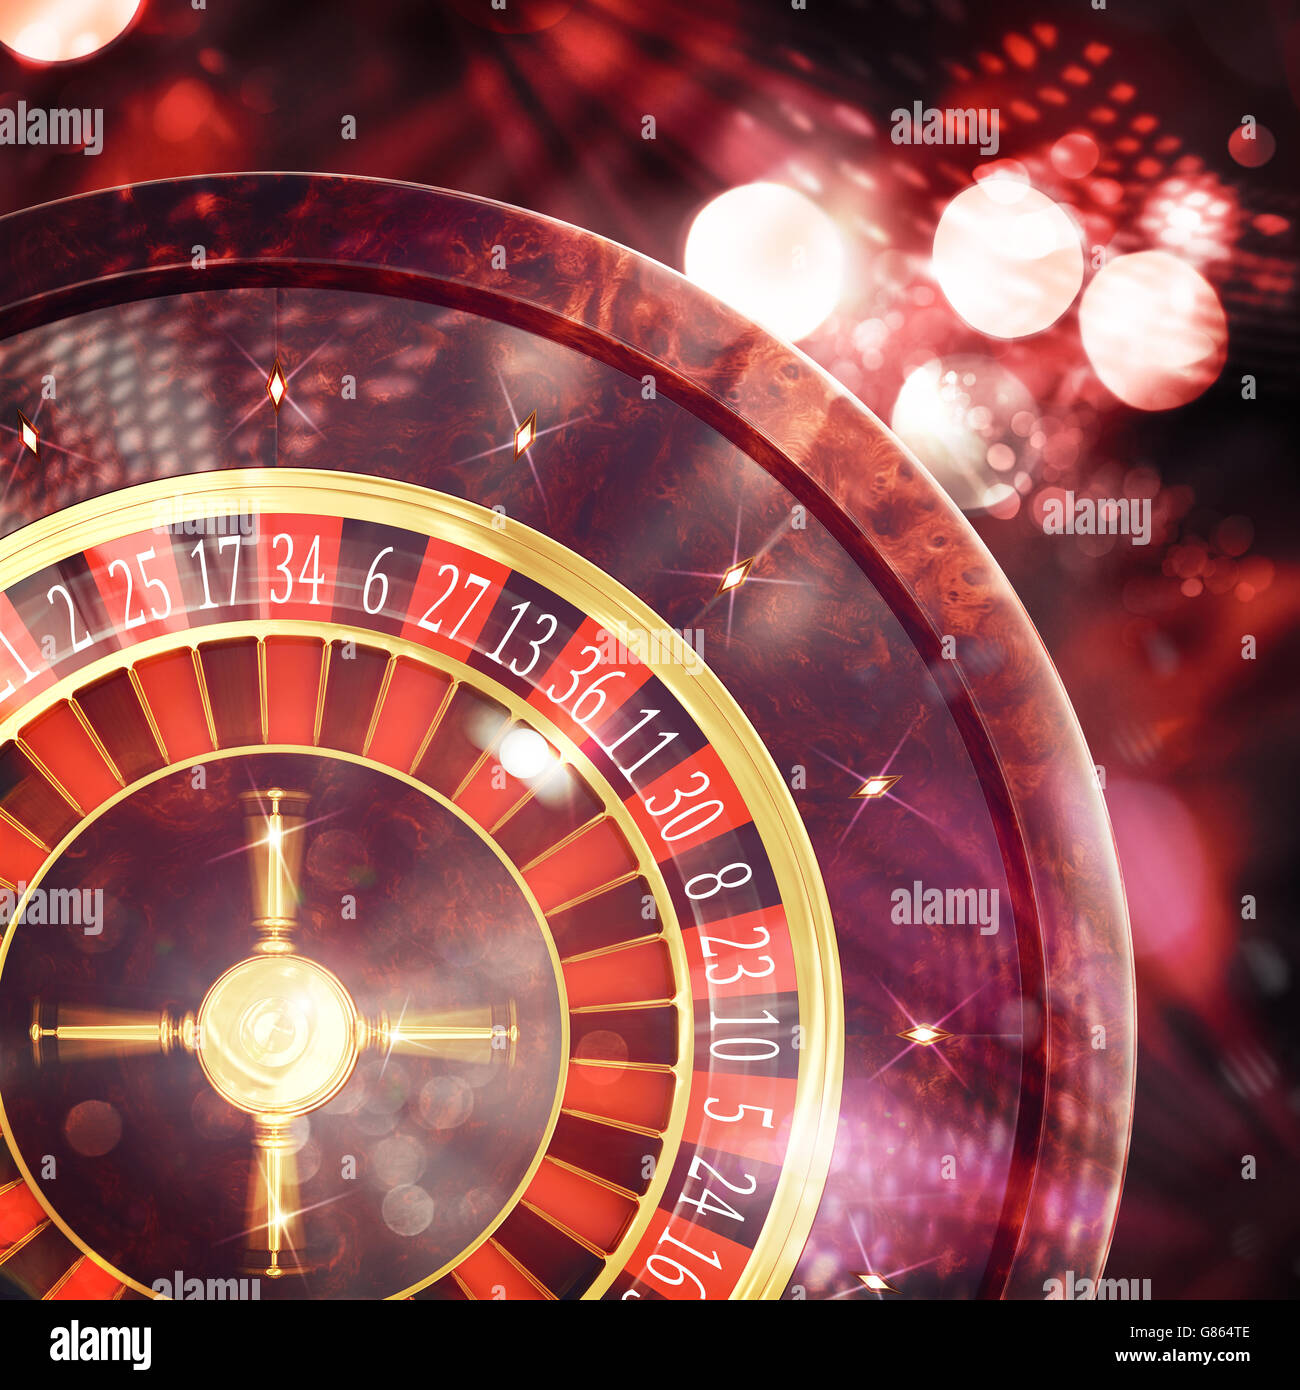 3D Rendering of casino roulette - Stock Image